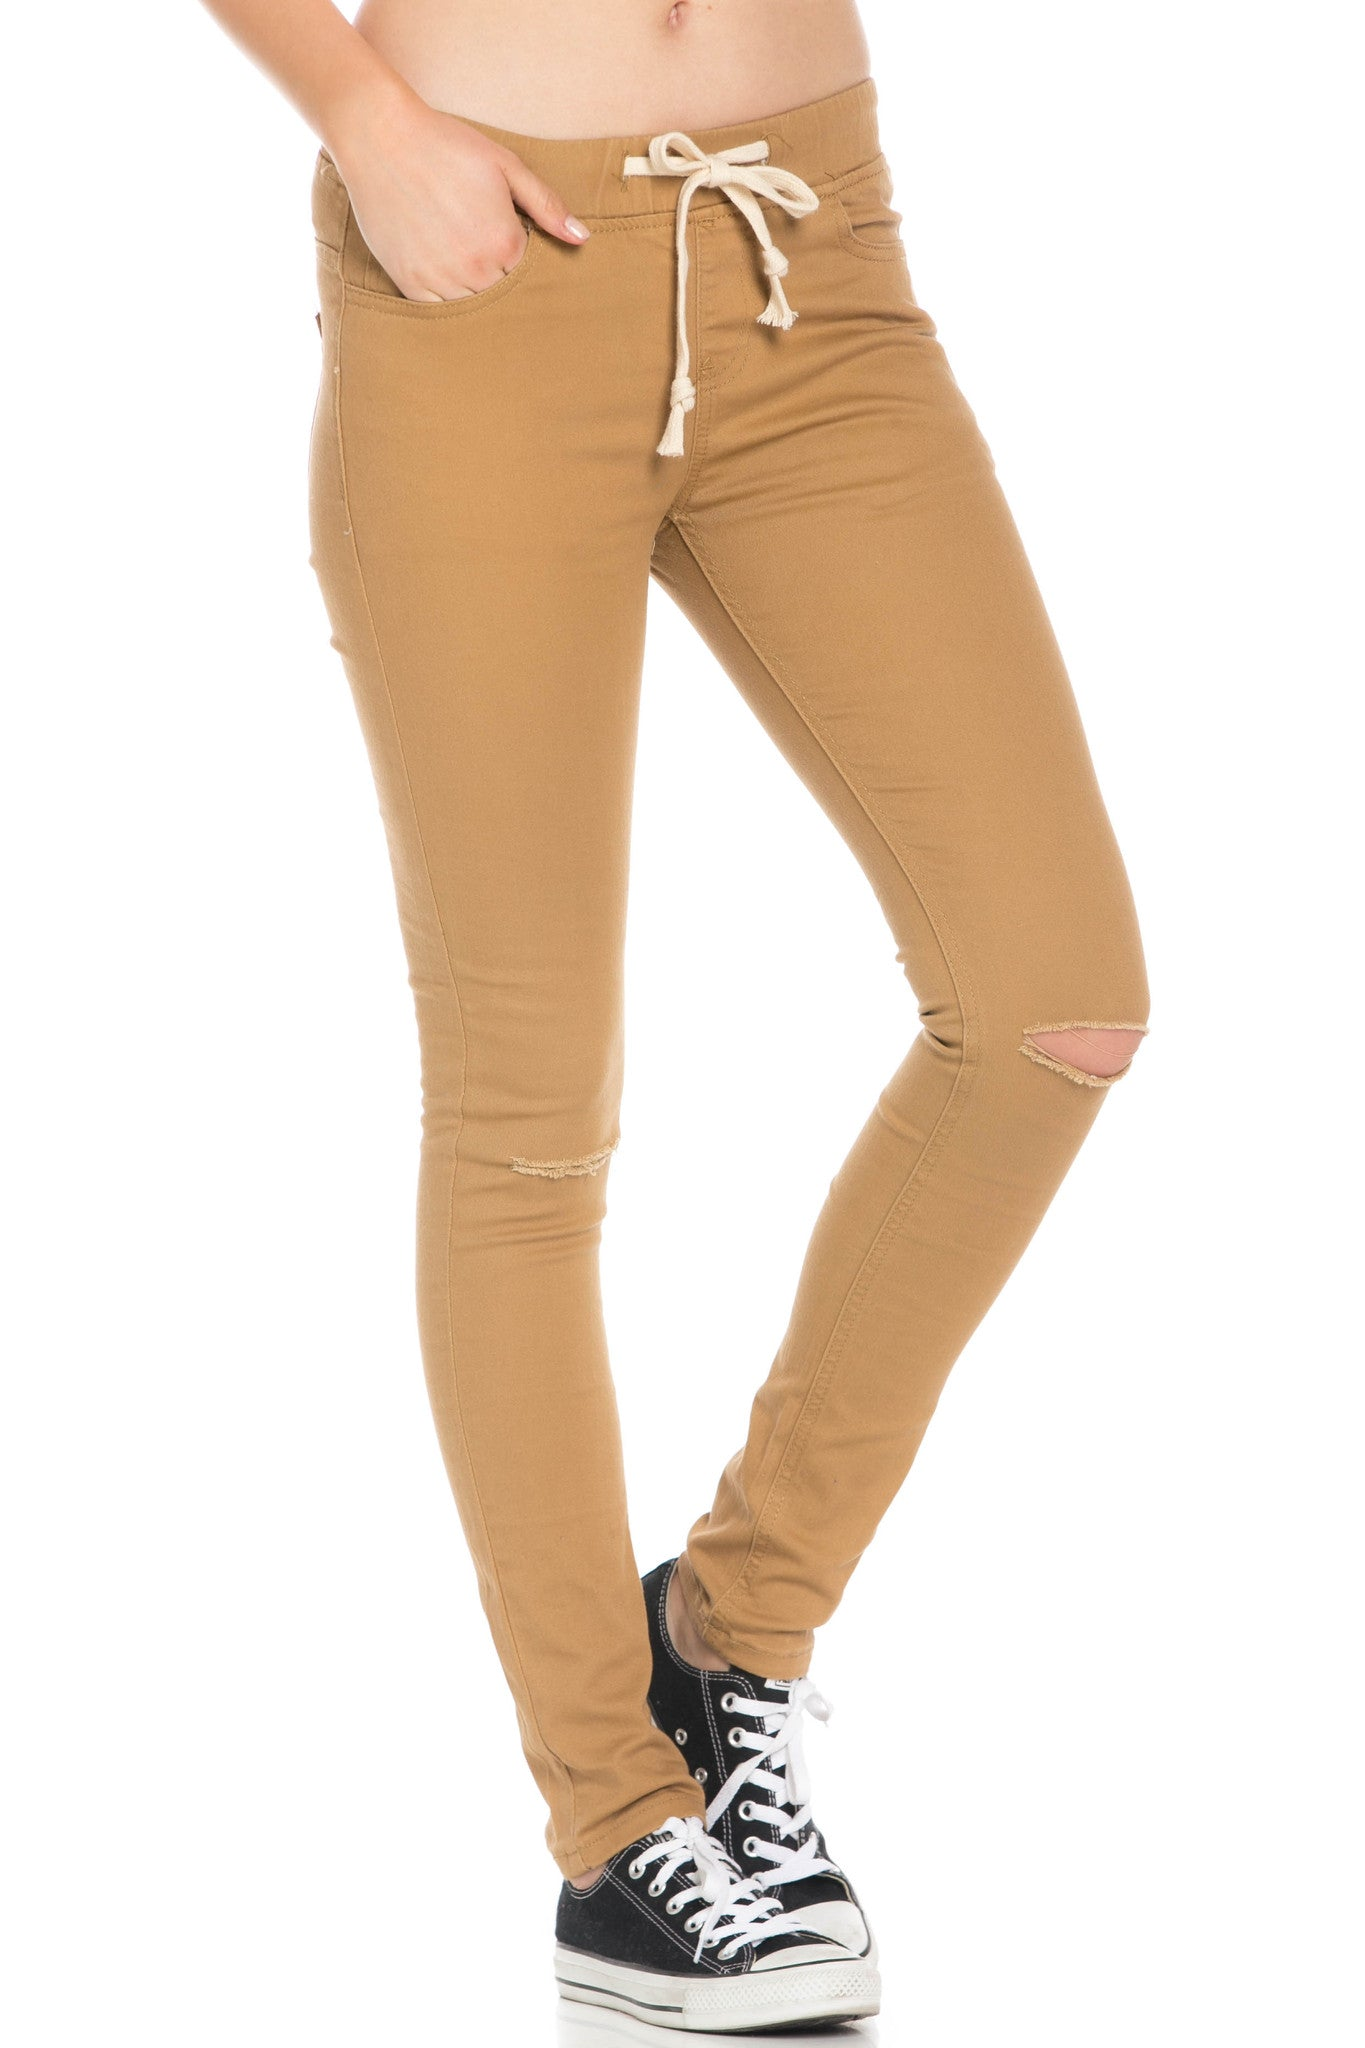 Destroyed Wheat Skinny Jogger Jeans - Pants - My Yuccie - 6